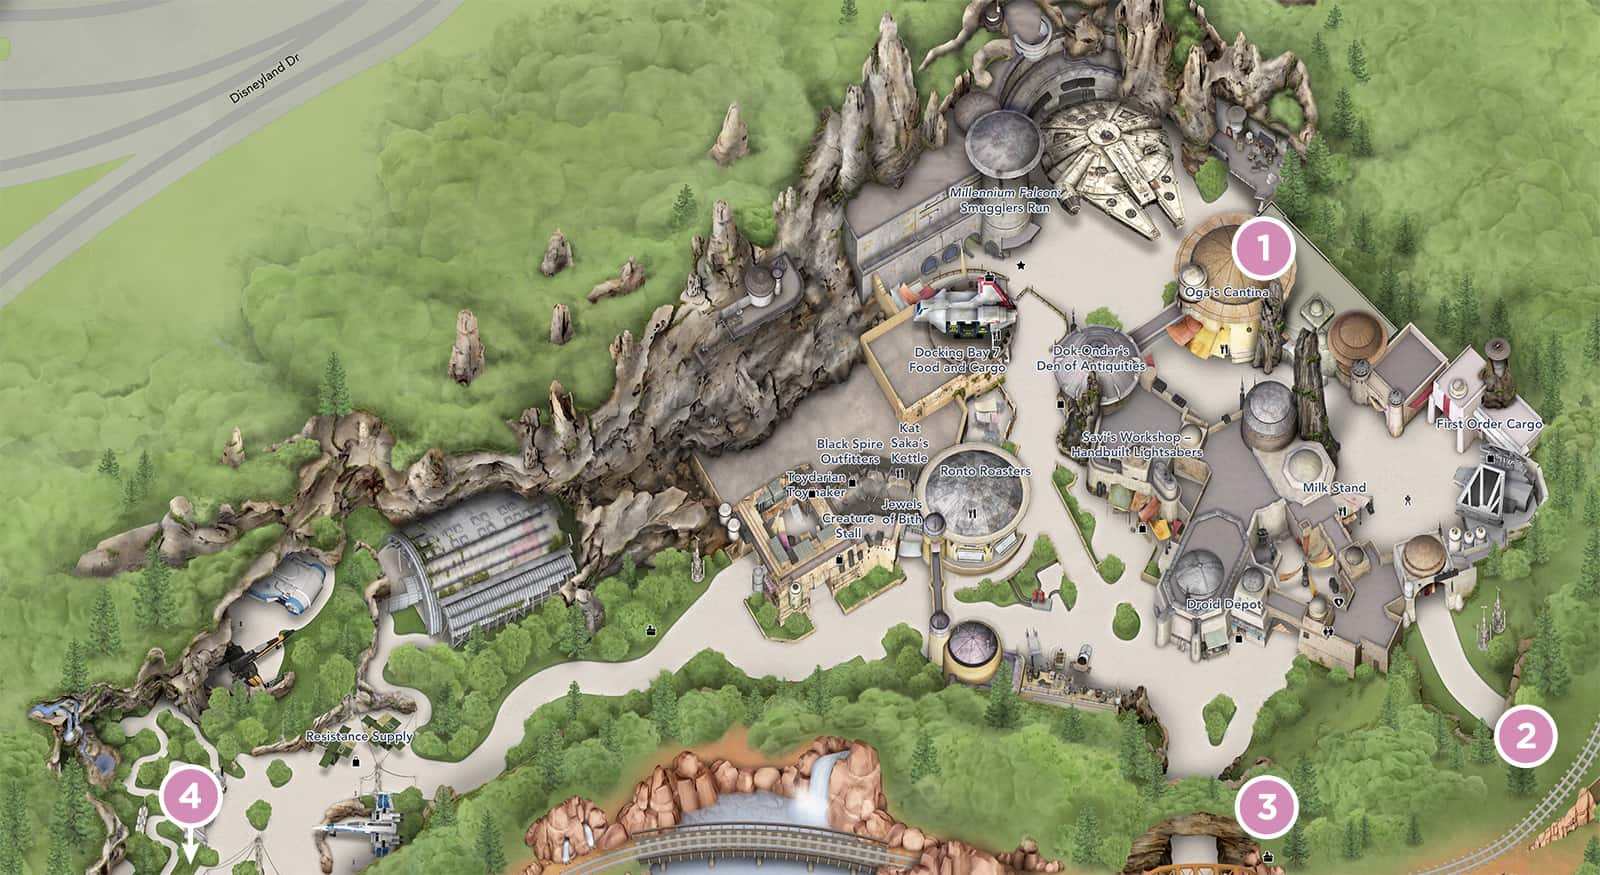 Full map of Star Wars Land (a.k.a, Galaxy's Edge)